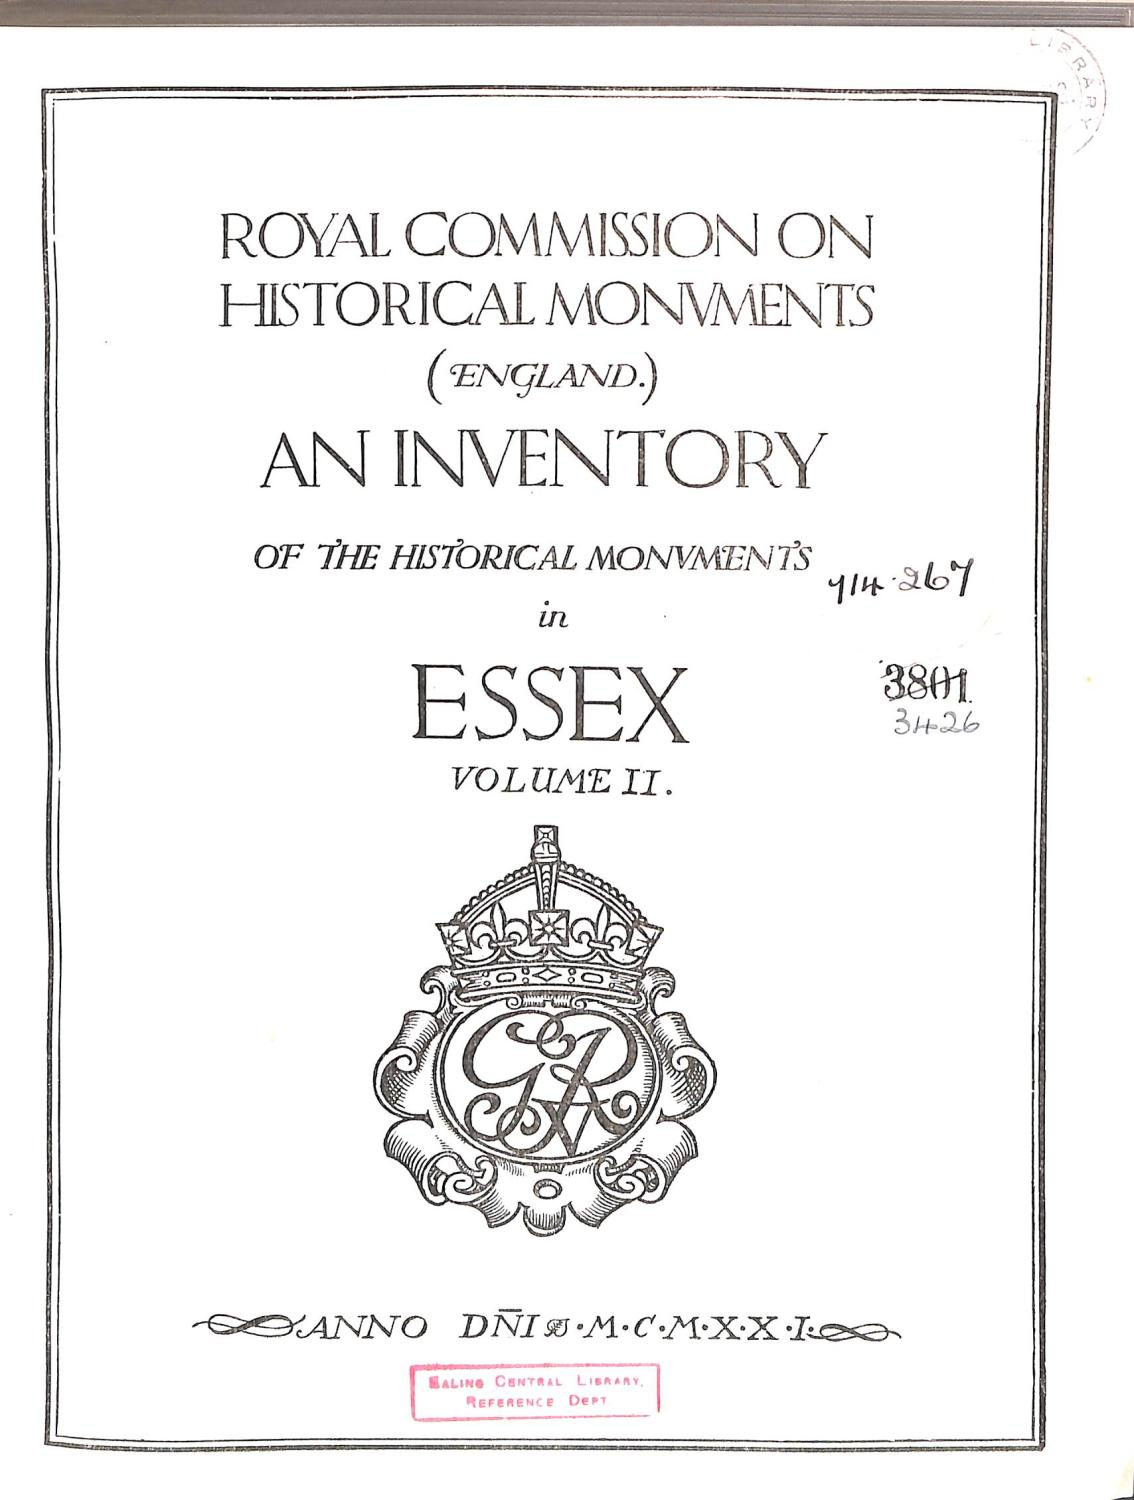 Royal Commission on Historical Monuments (England) An